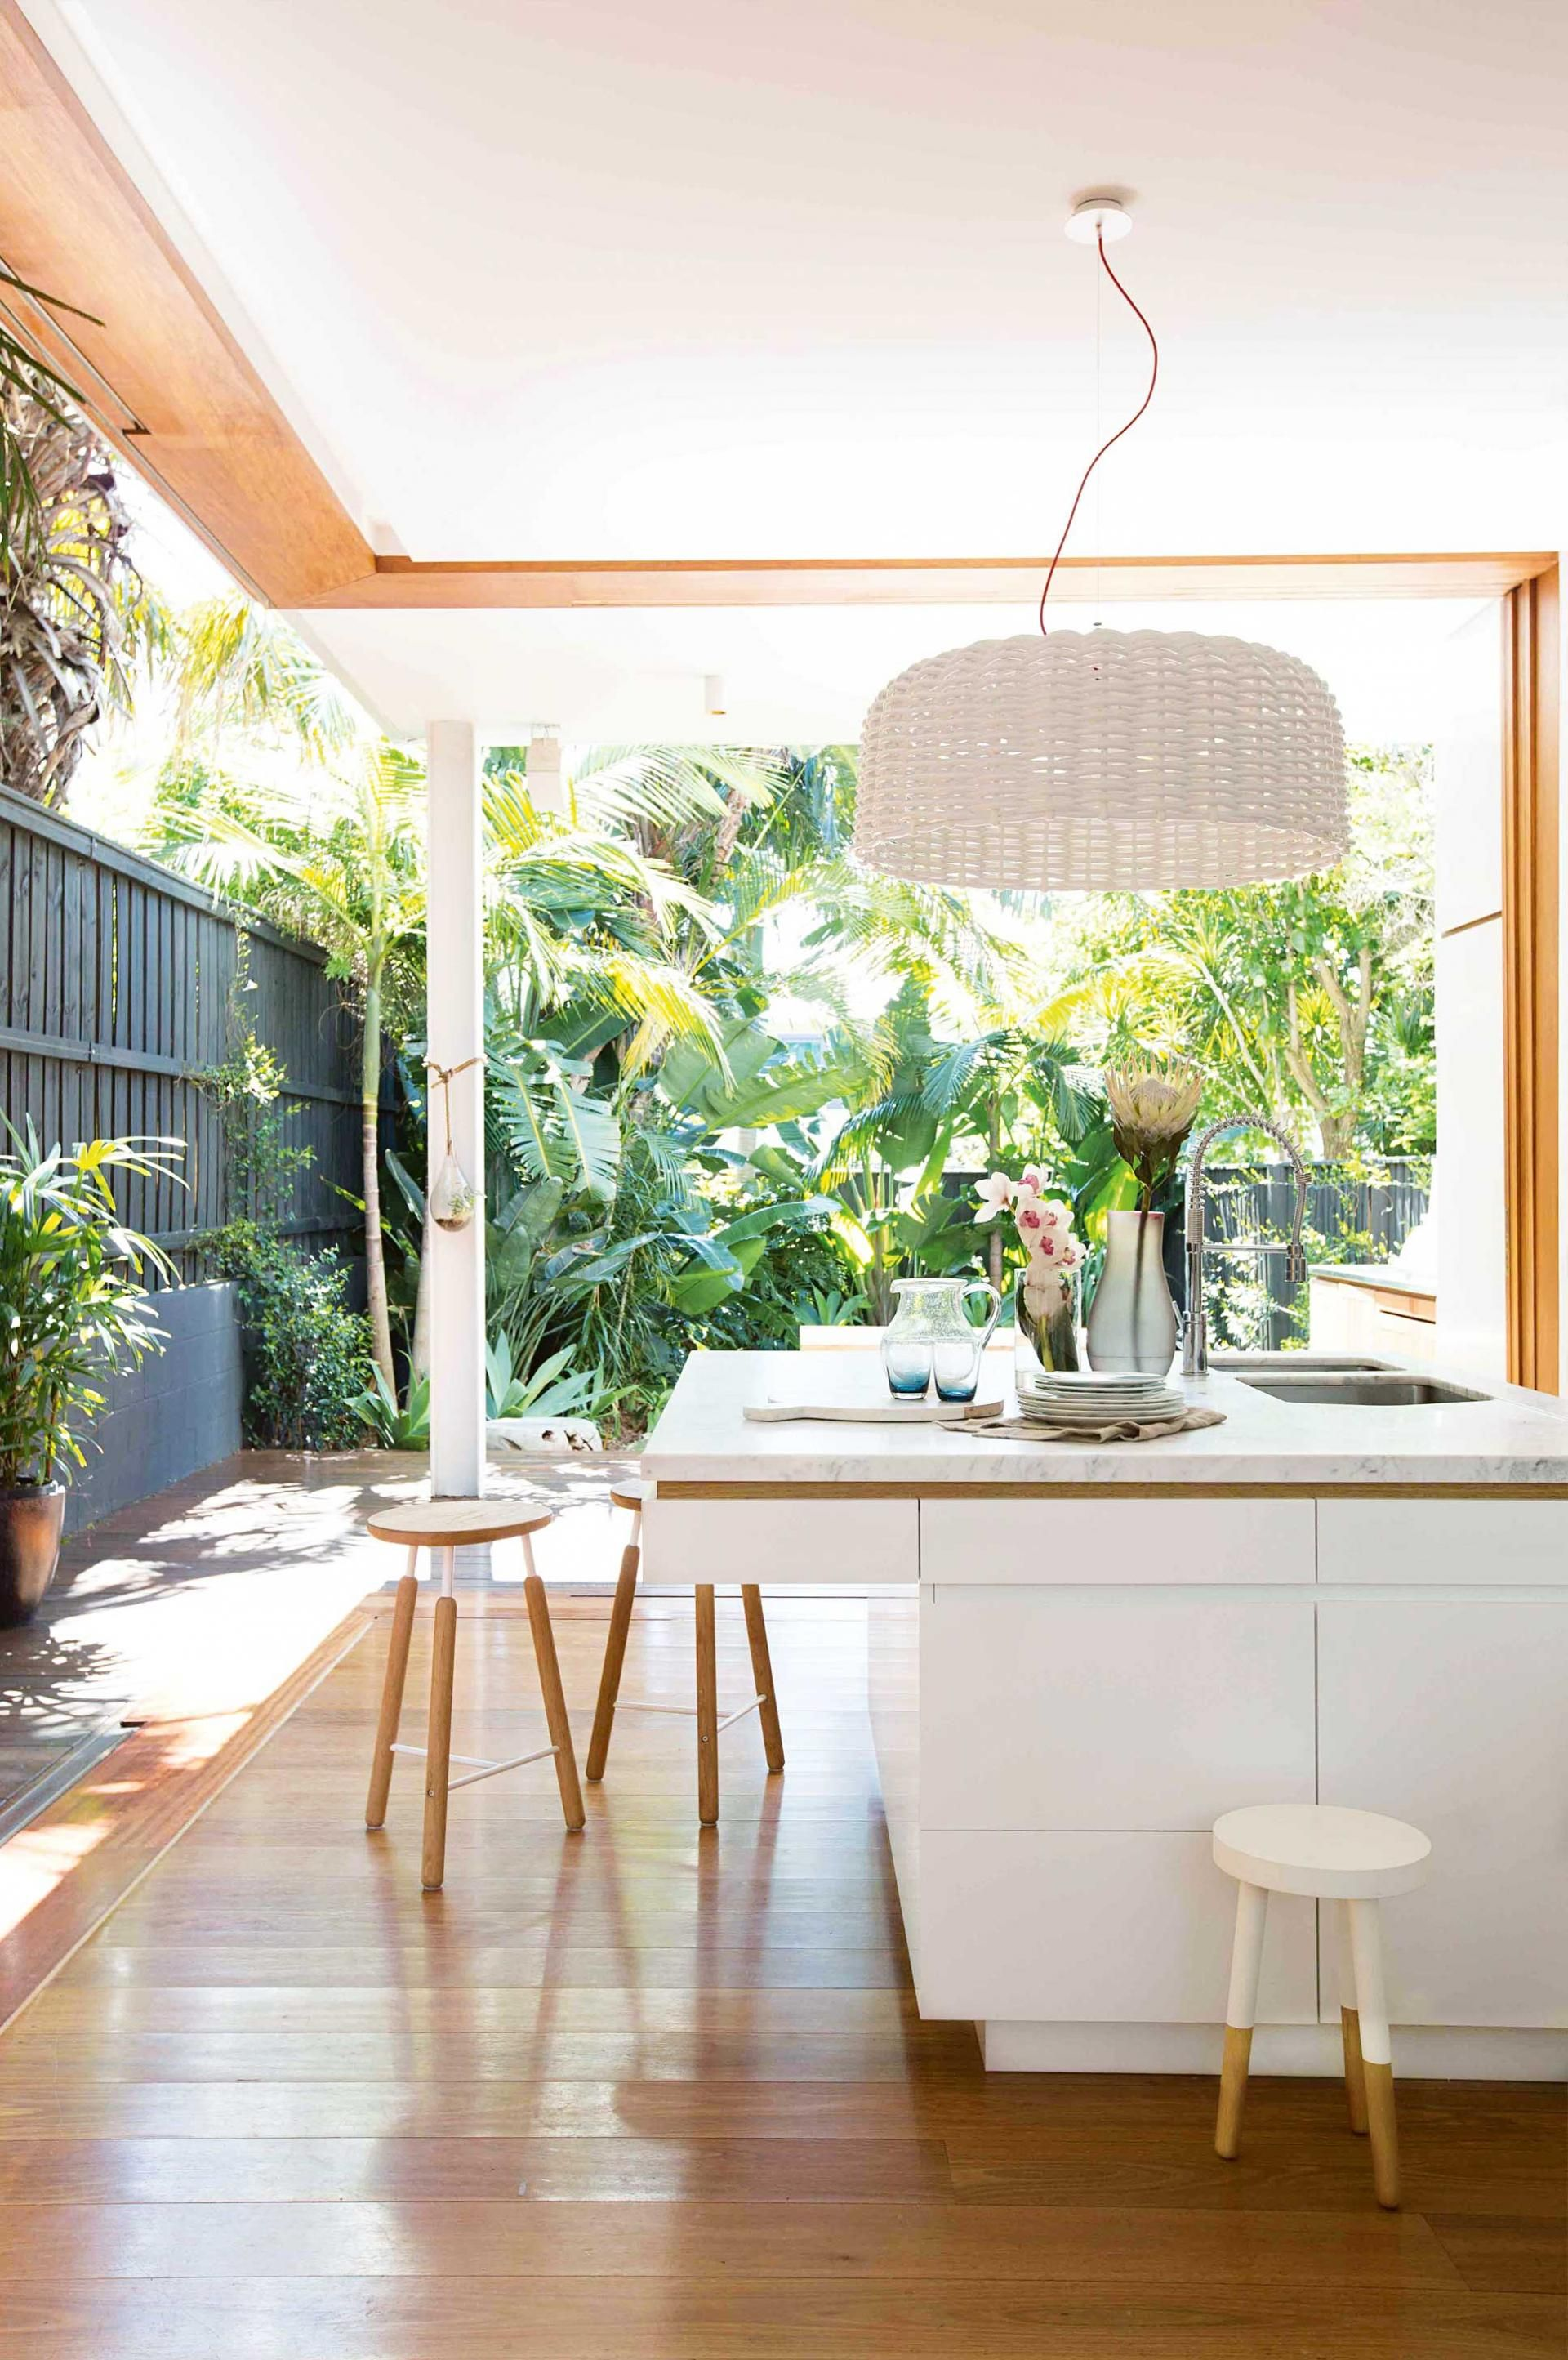 The best kitchen ideas ever styling by jason grant photography by